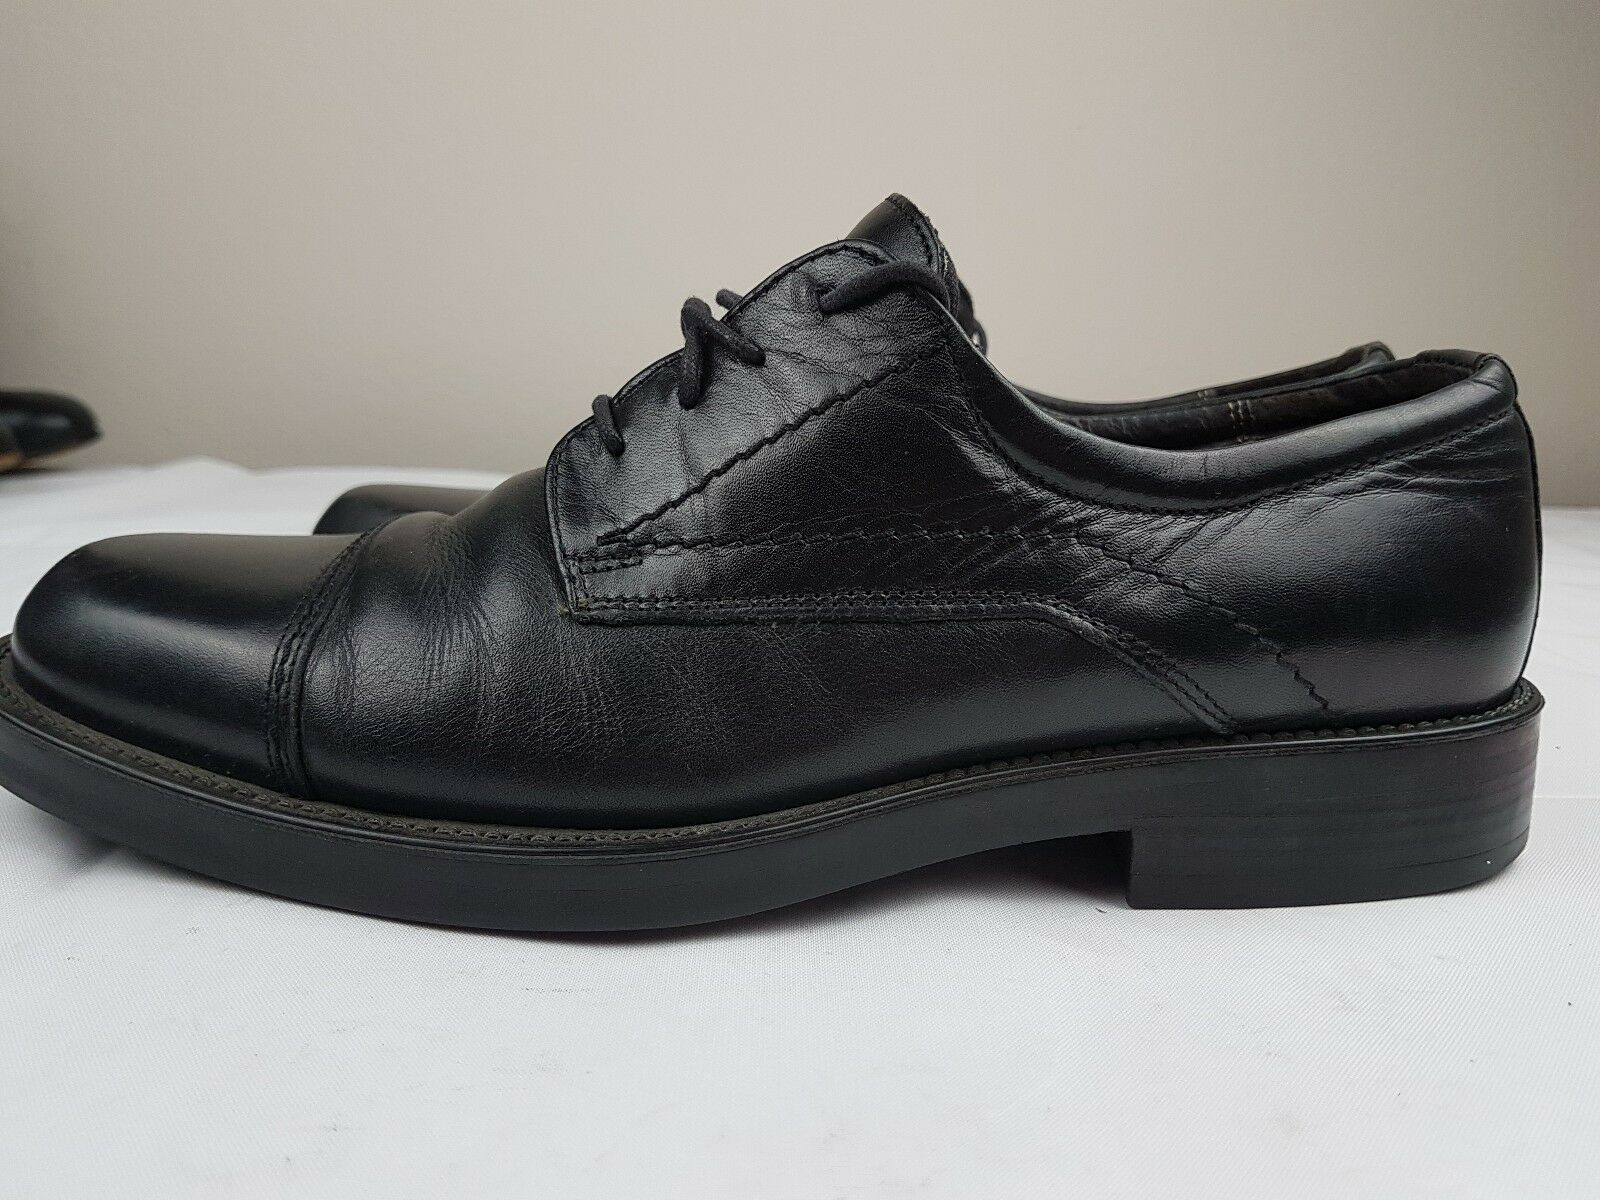 Men's Shoes Bostonian Black Leather Dress Shoes Men's Cap Toe Derby Made in Italy 9 M a24a00